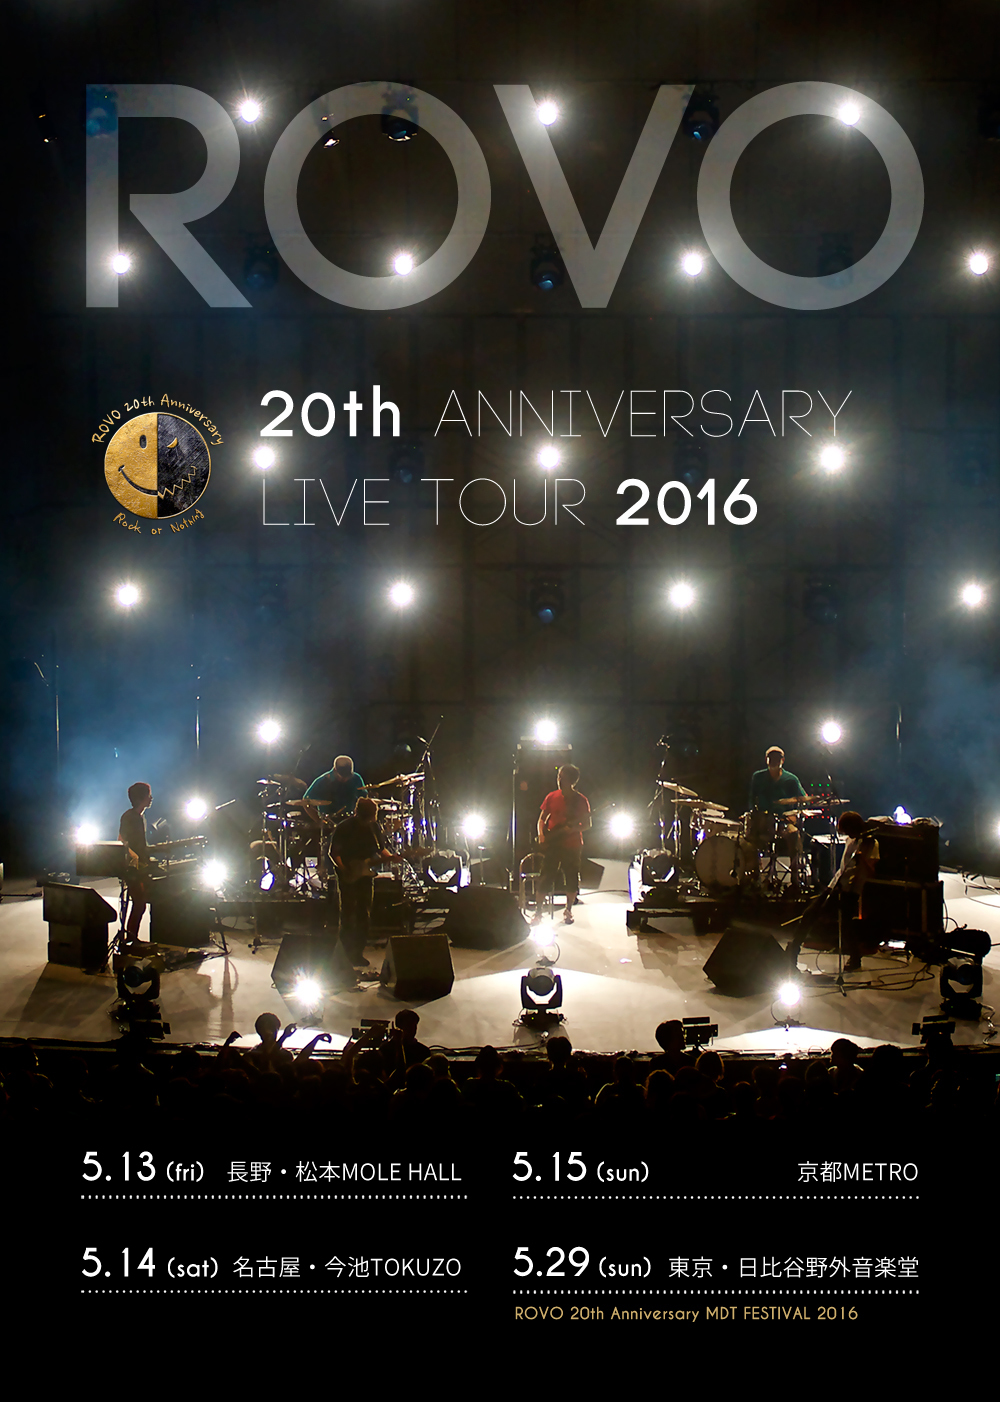 ROVO 20th Anniversary LIVE TOUR 2016